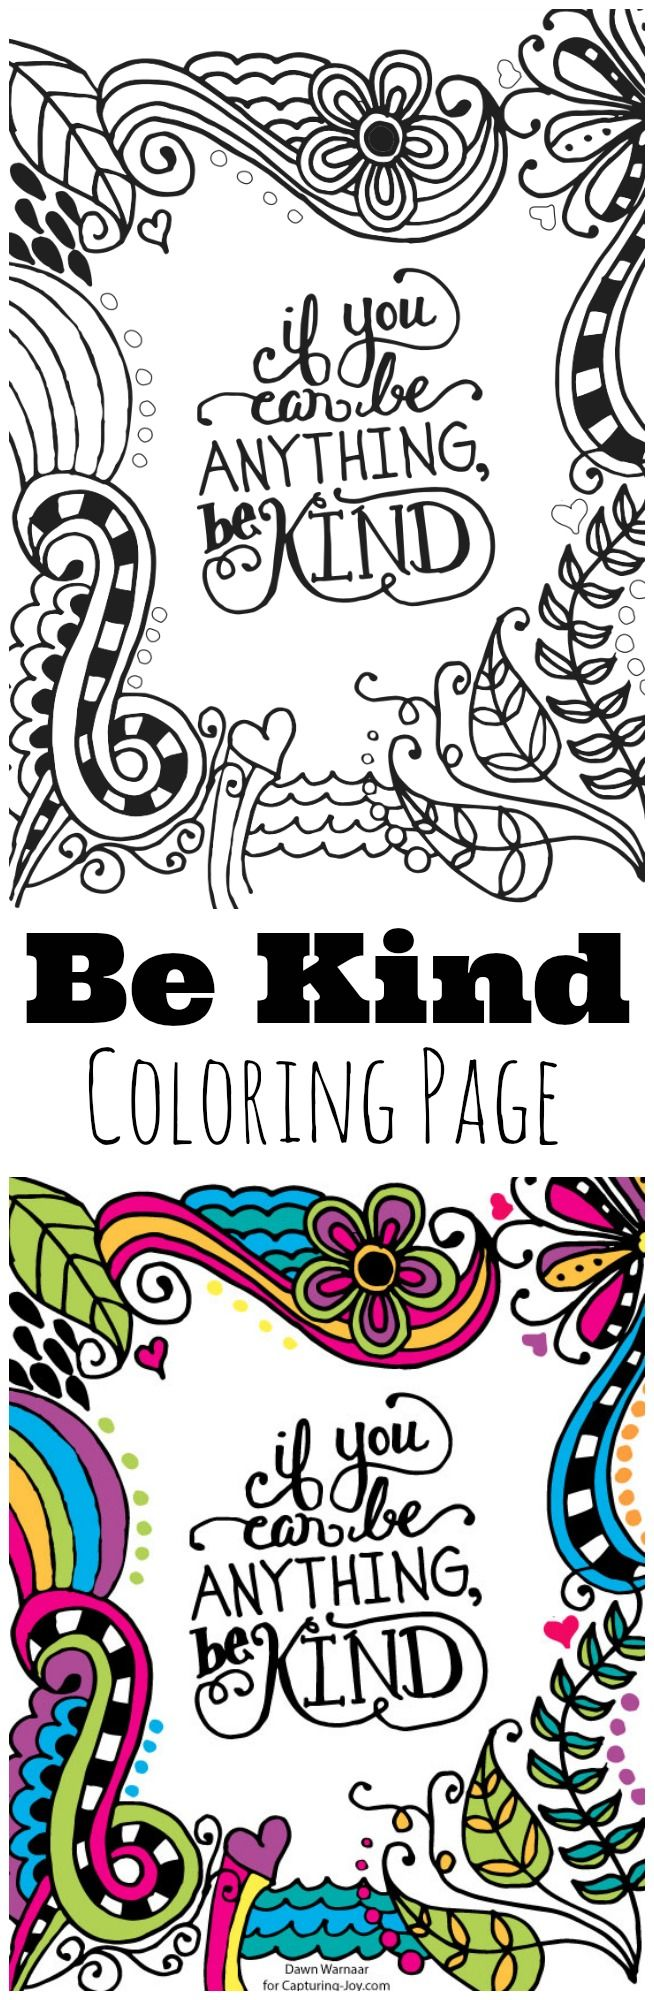 Be Kind Kids Coloring Page Printable Great Activity For Your This Summer